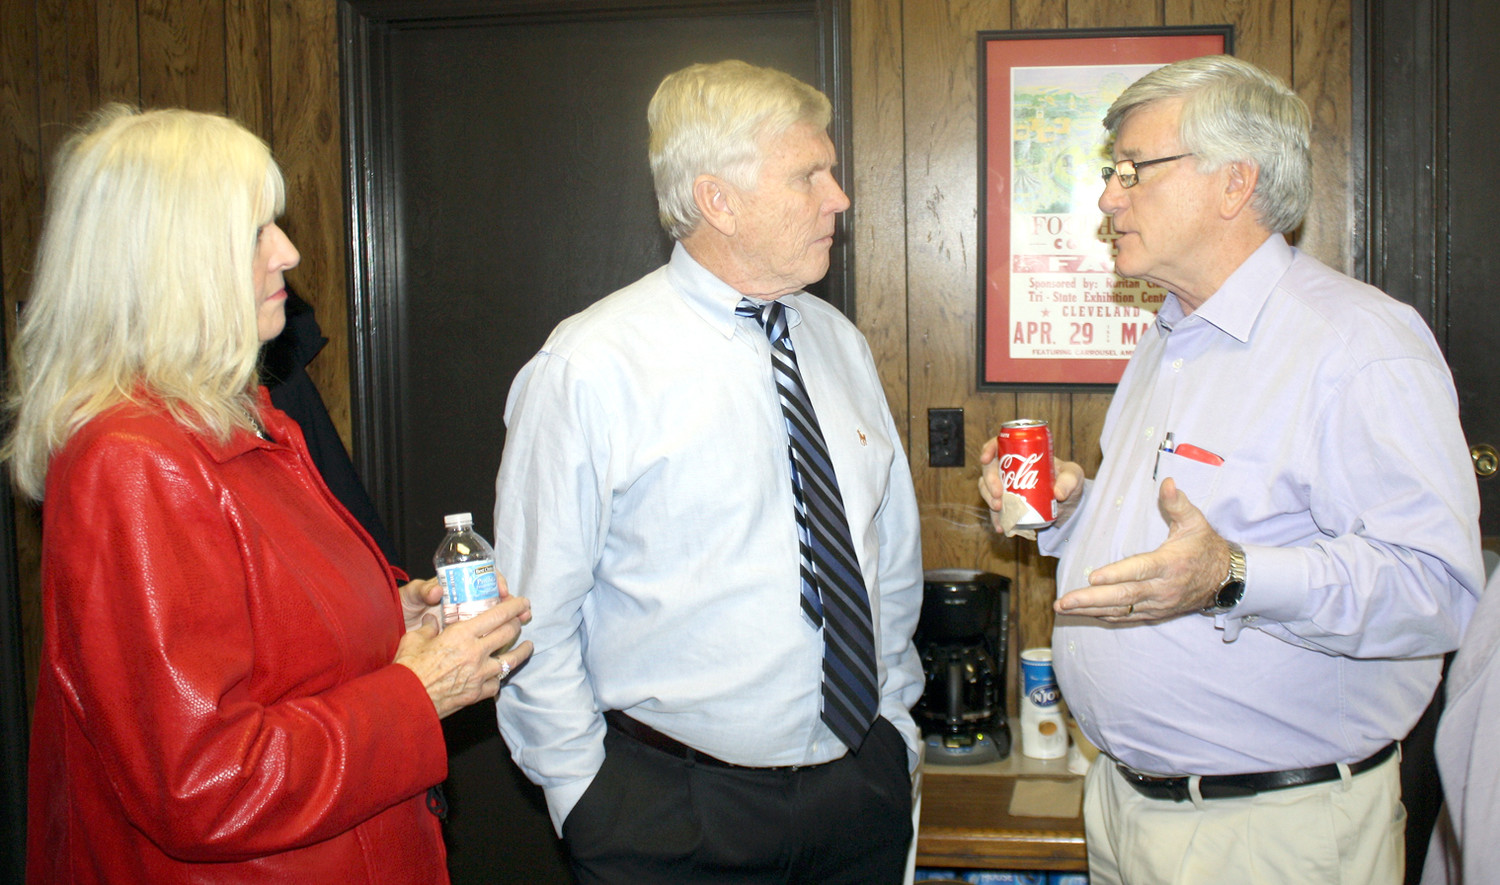 RETIRING VETERANS Affairs Officer Joe Davis, center, joins his wife, Judy, as they talk with Tennessee Sen. Todd Gardenhire, right, at Friday afternoon's reception for Davis.